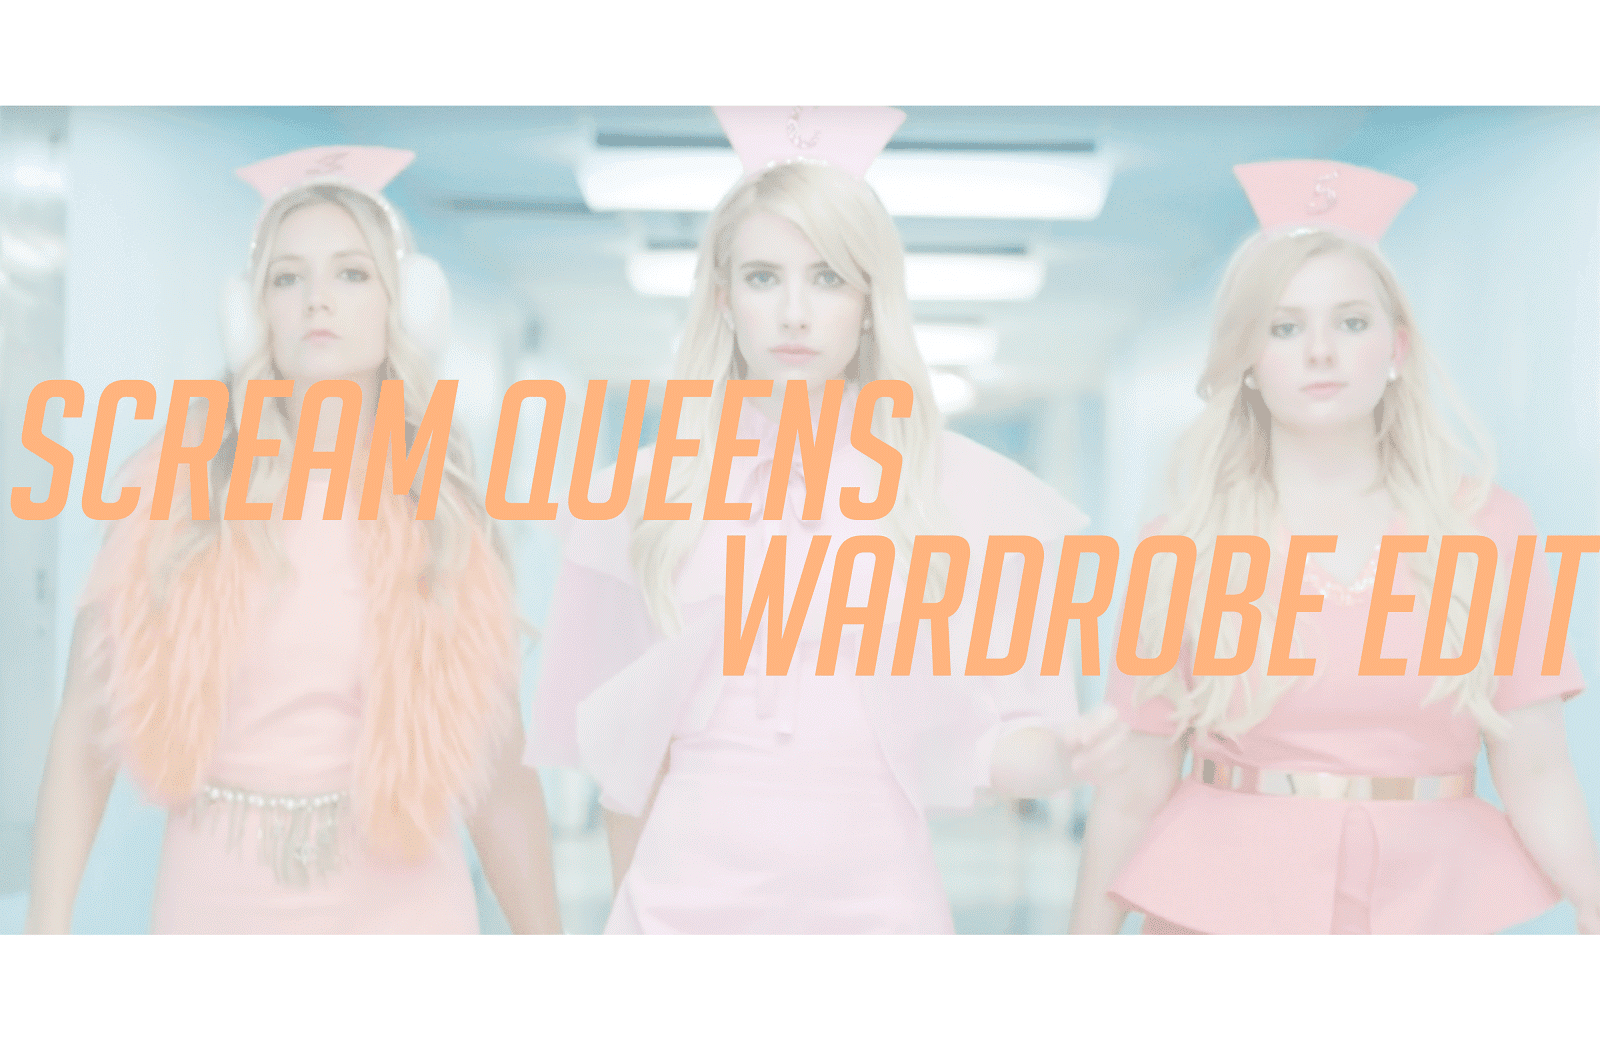 scream queens style steal wardrobe edit